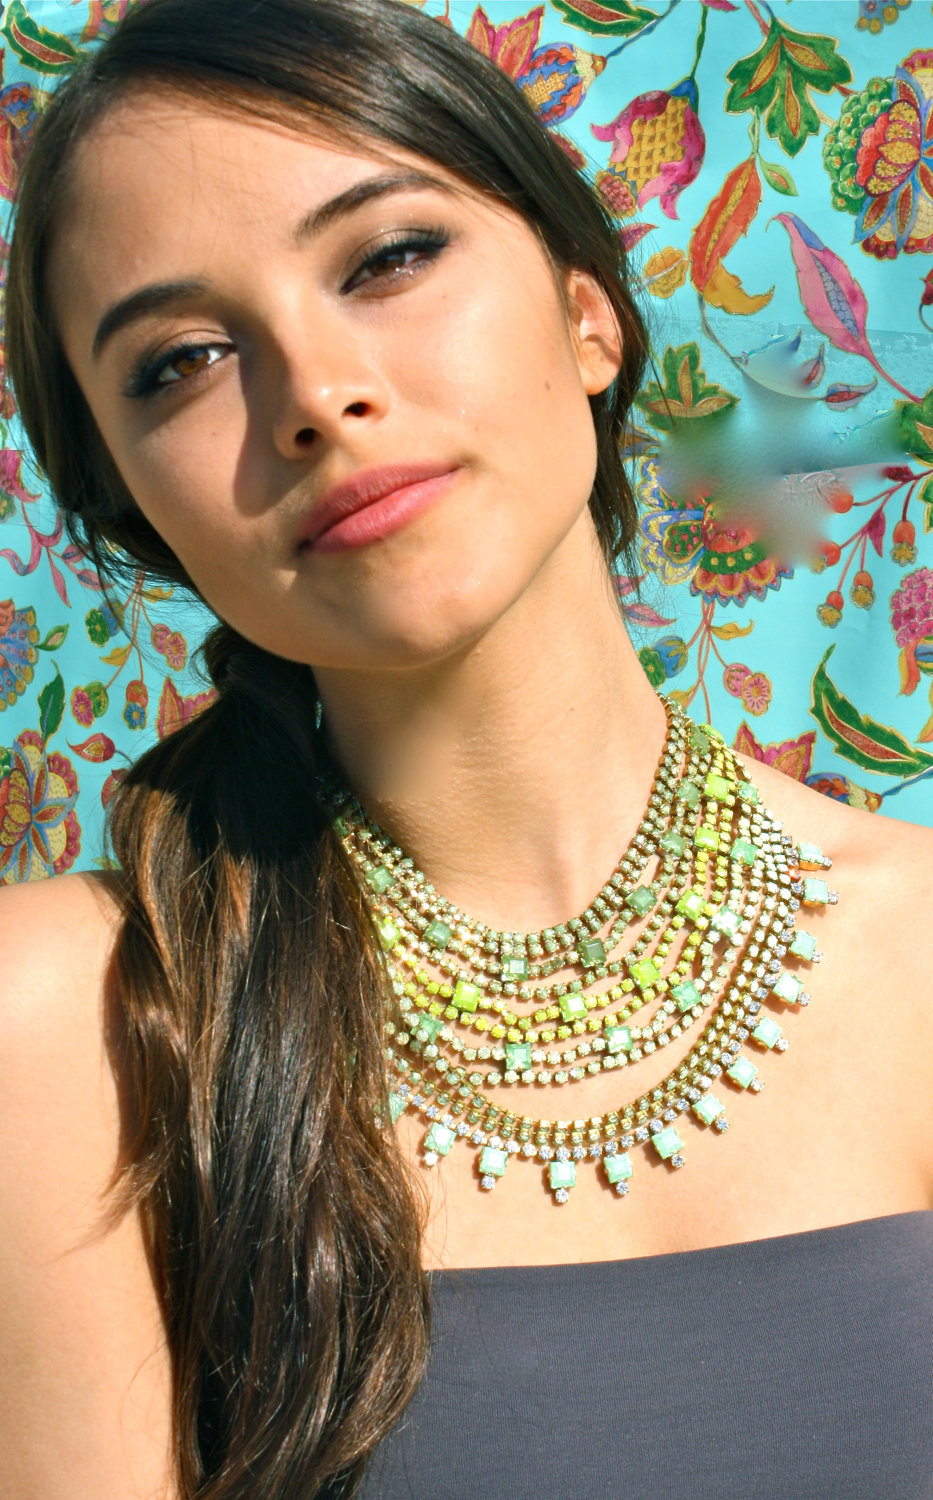 Source: Trend4girls.com Jewellery hacks: Fast tips on how to wear necklaces - Gemstone Pendants Statement Necklaces ideas 2 - Jewellery hacks: Fast tips on how to wear necklaces